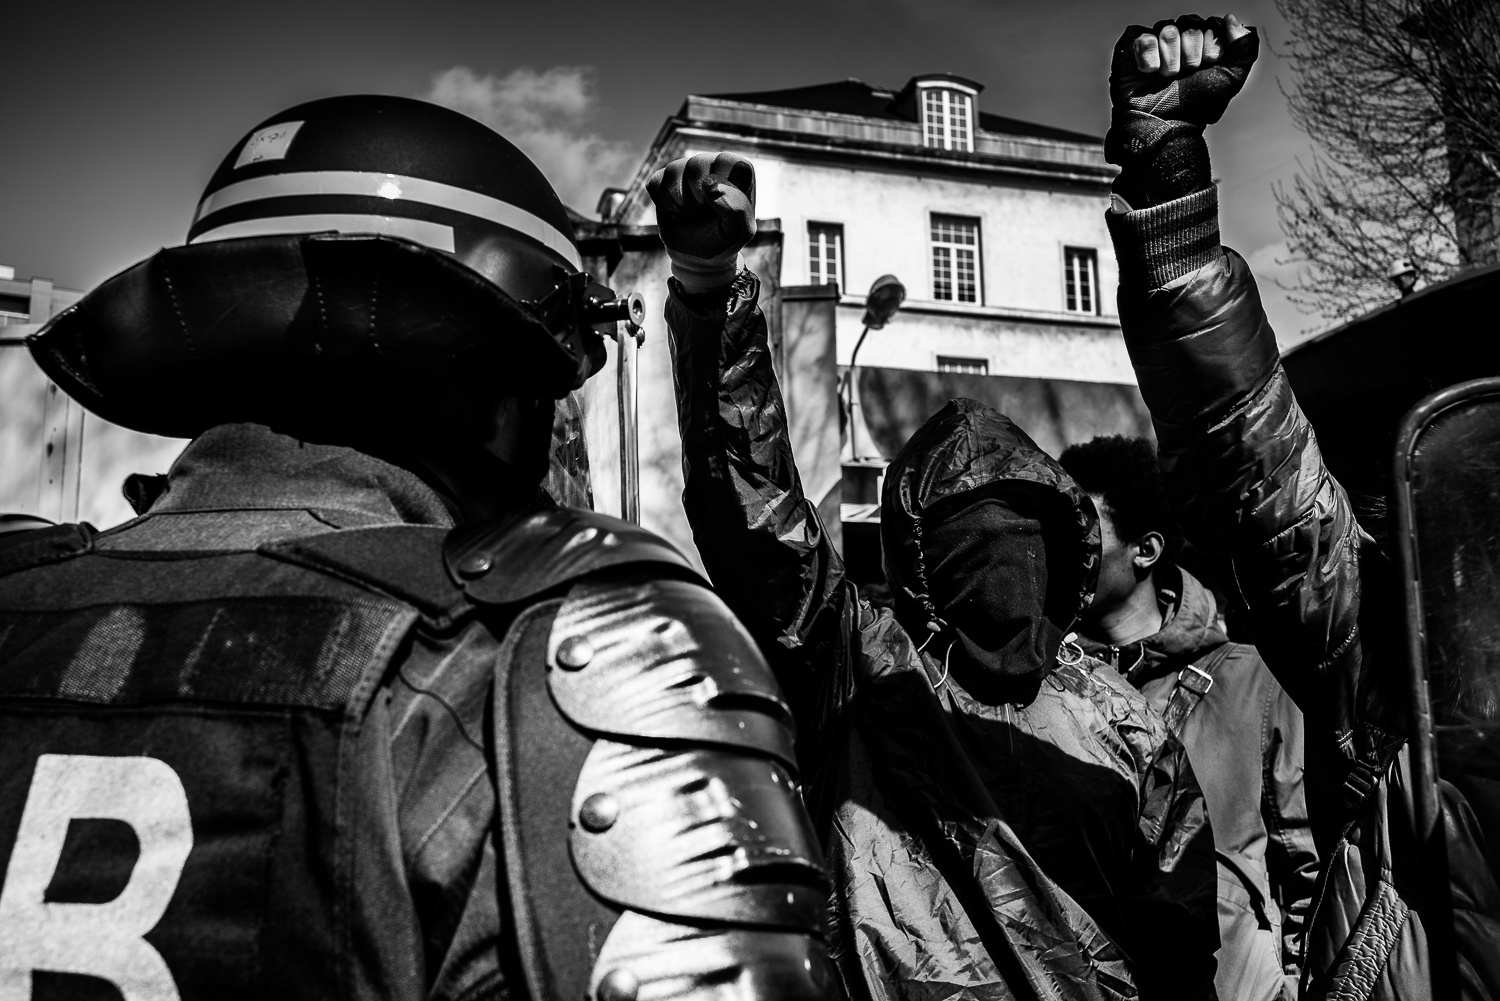 In defiance towards the police's orders to disperse, two protesters raised their fist up signalling their refusal to move.